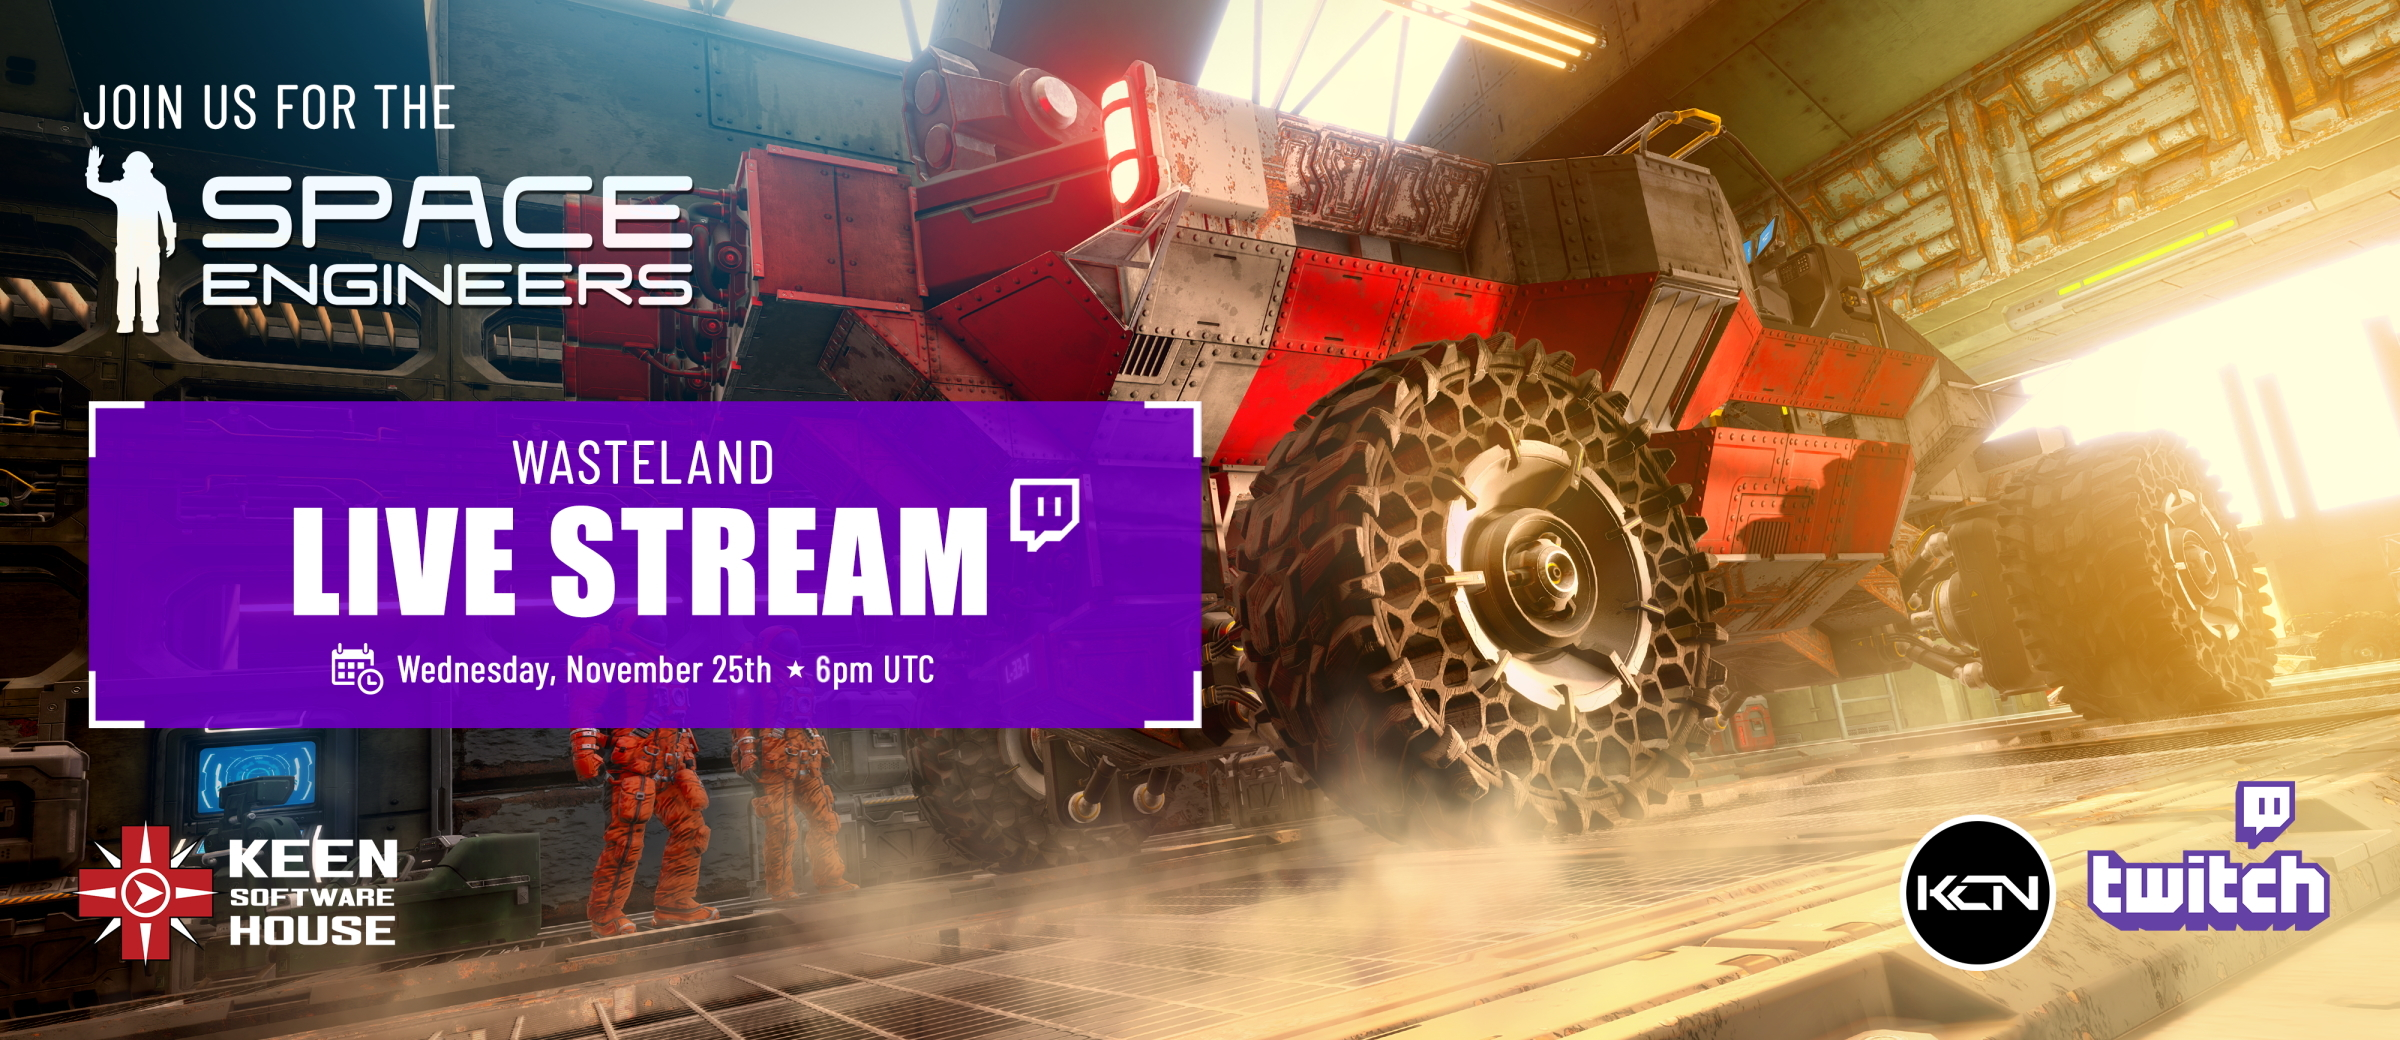 Please join us for a Space Engineers update stream! 😁